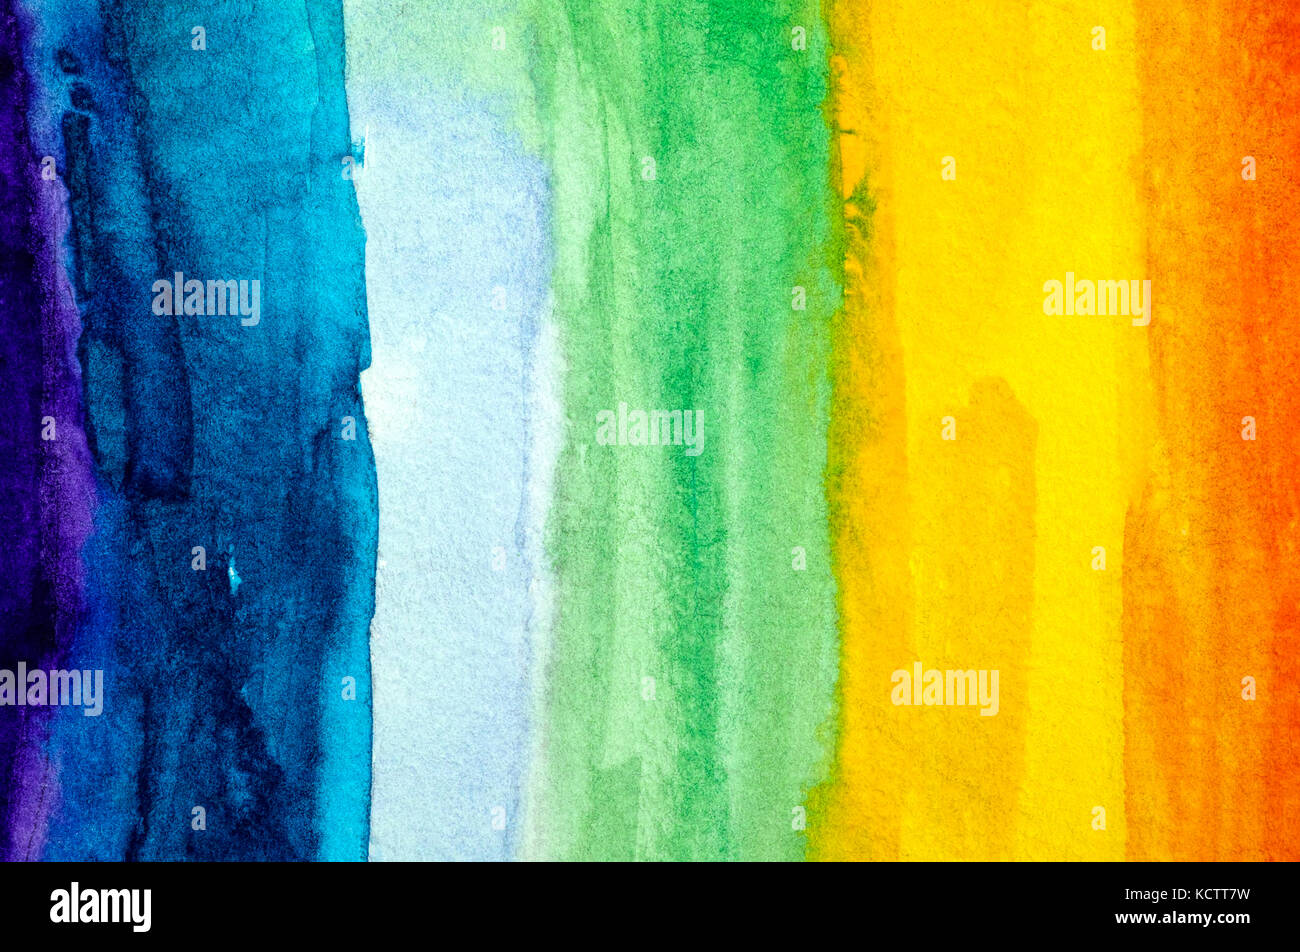 Rainbow background. acquerello disegno a mano. close-up. Immagini Stock